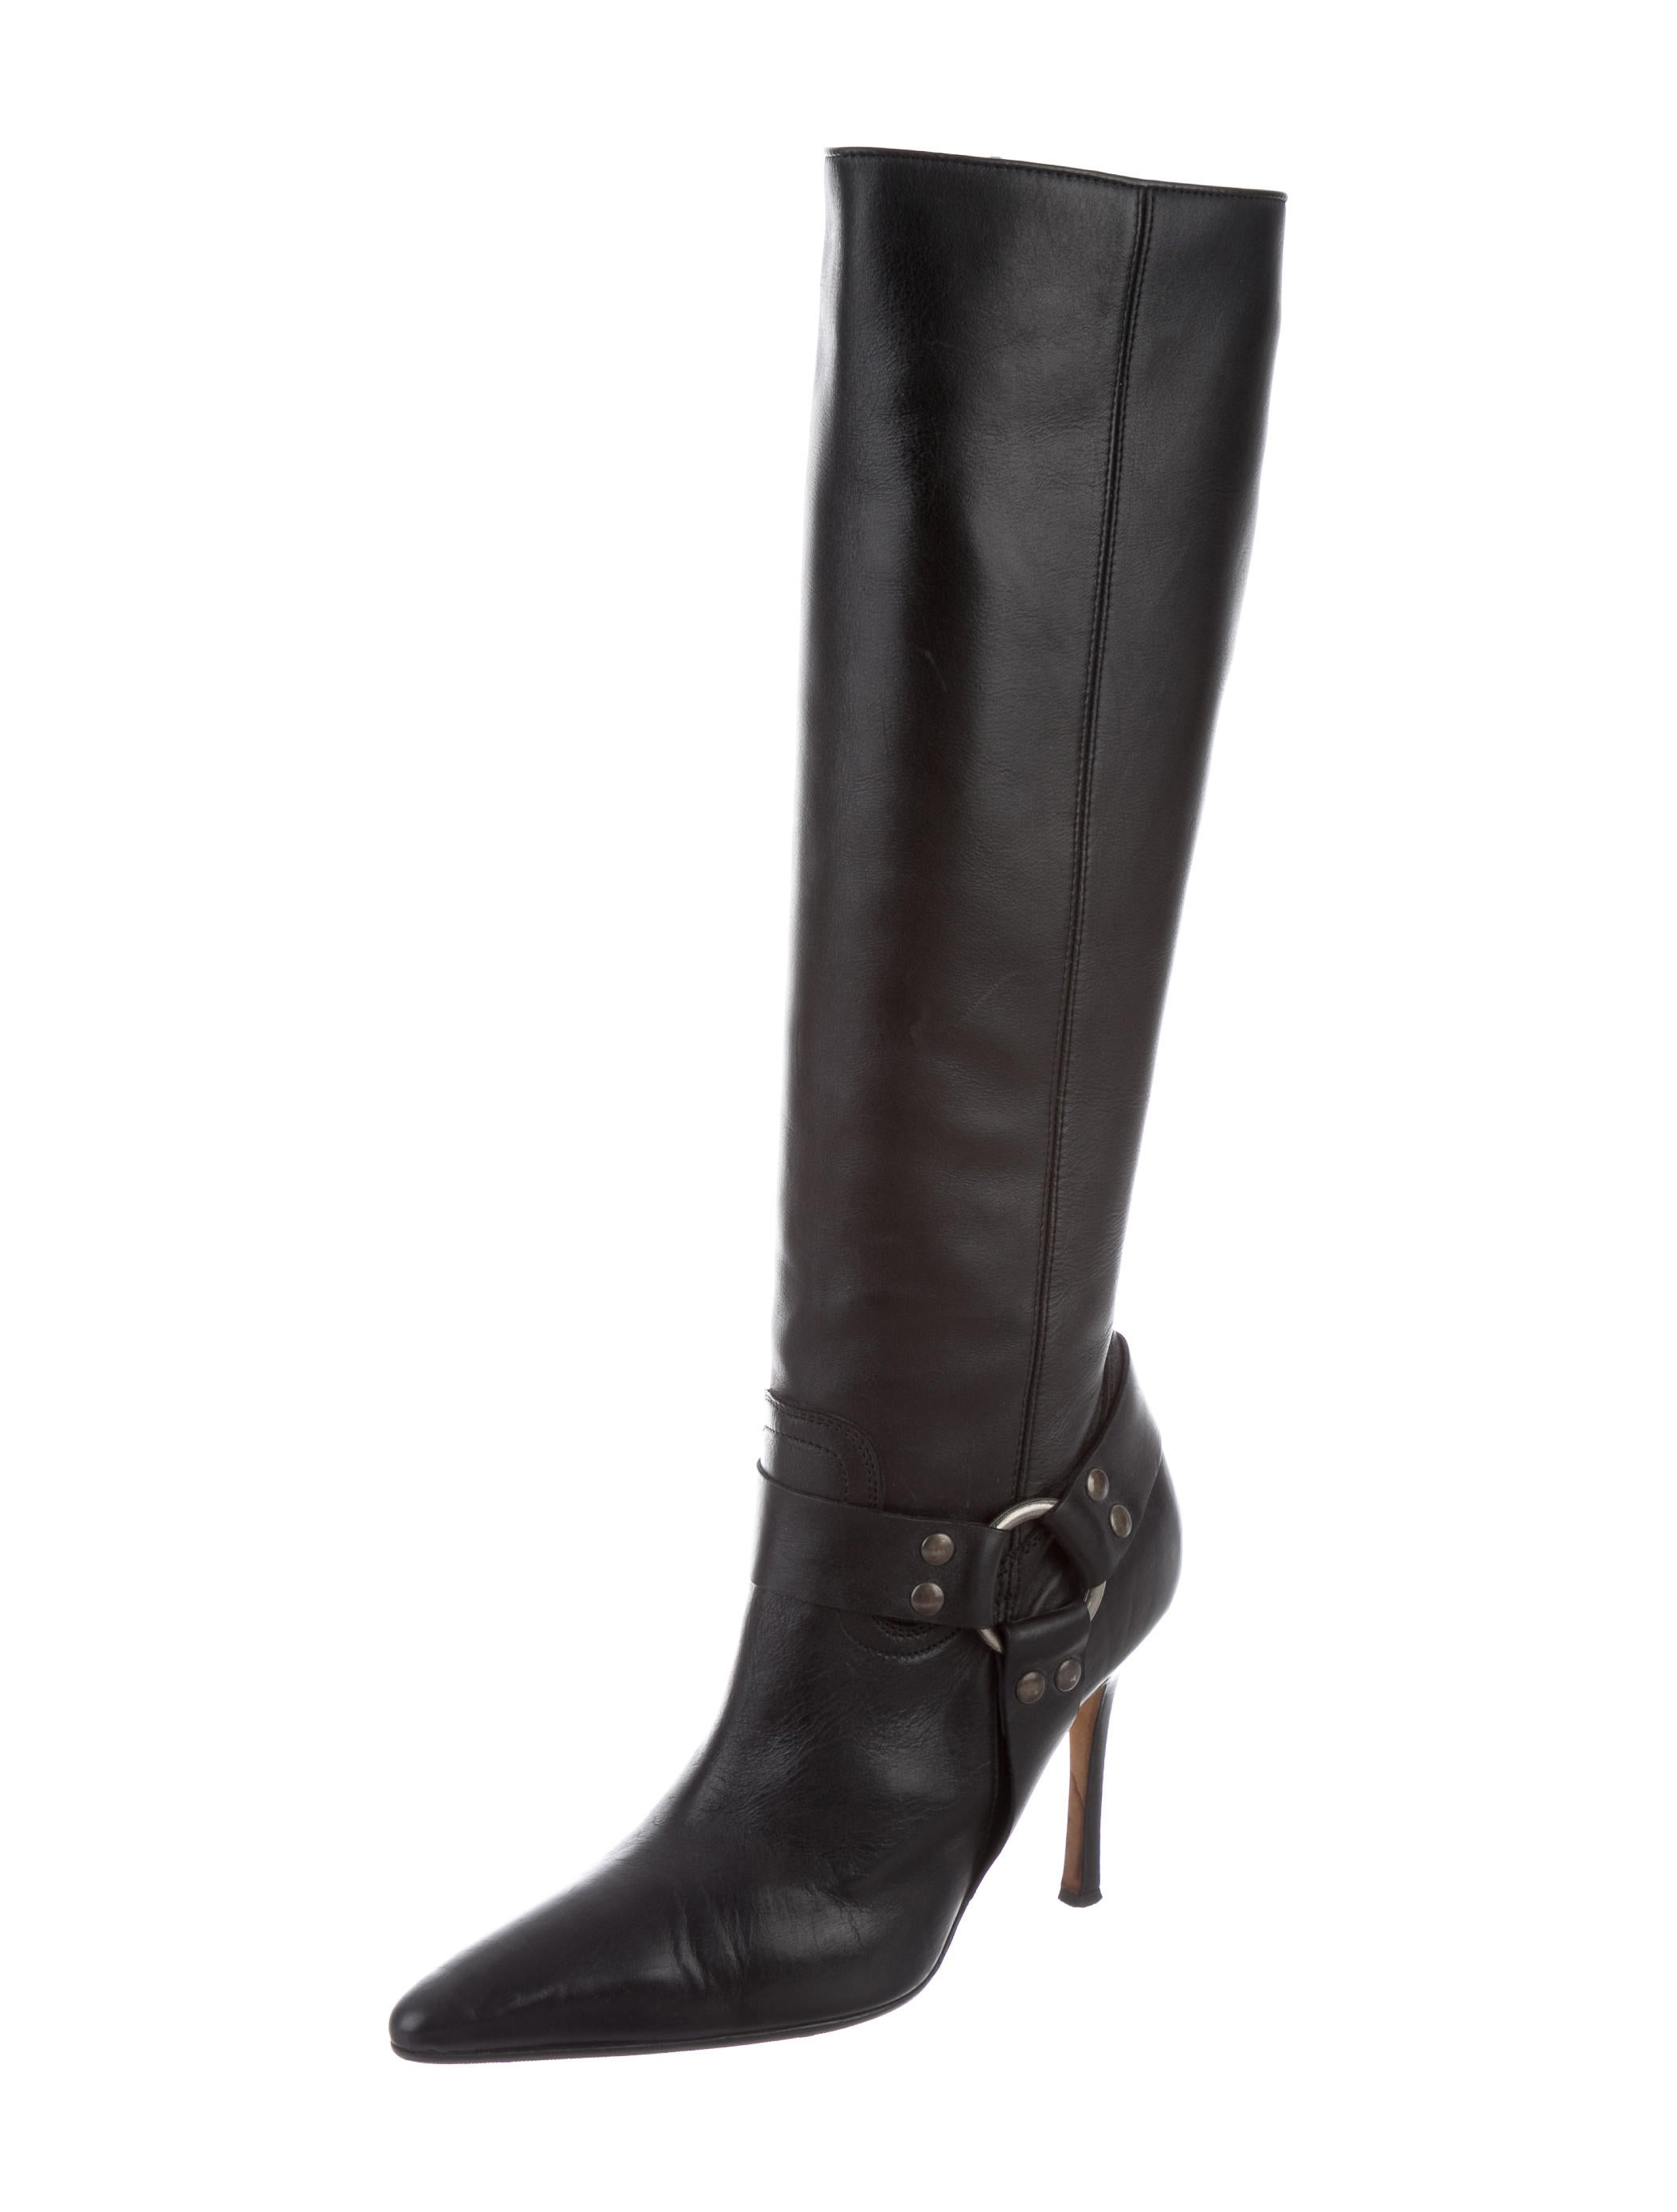 manolo blahnik leather knee high boots shoes moo62216